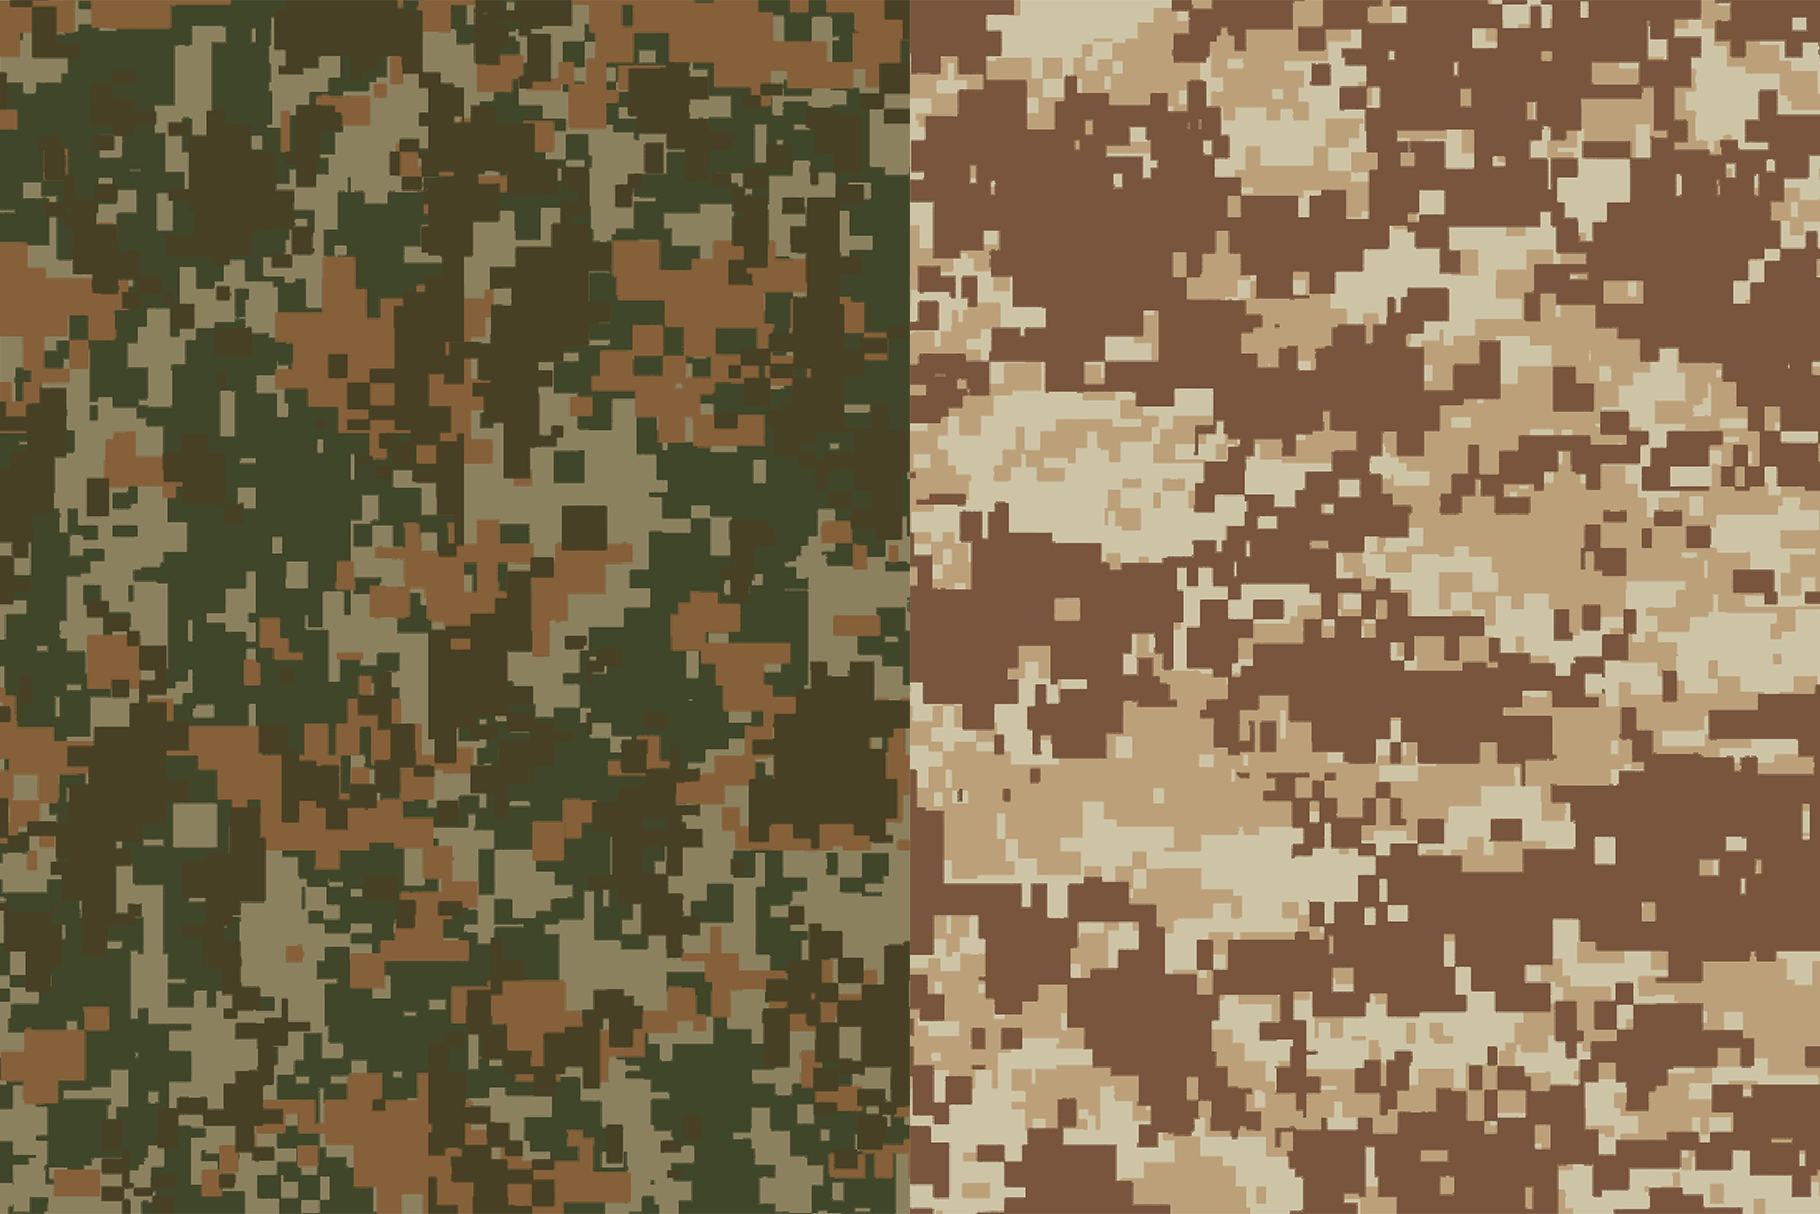 10 Pixel Camouflage Patterns example image 6